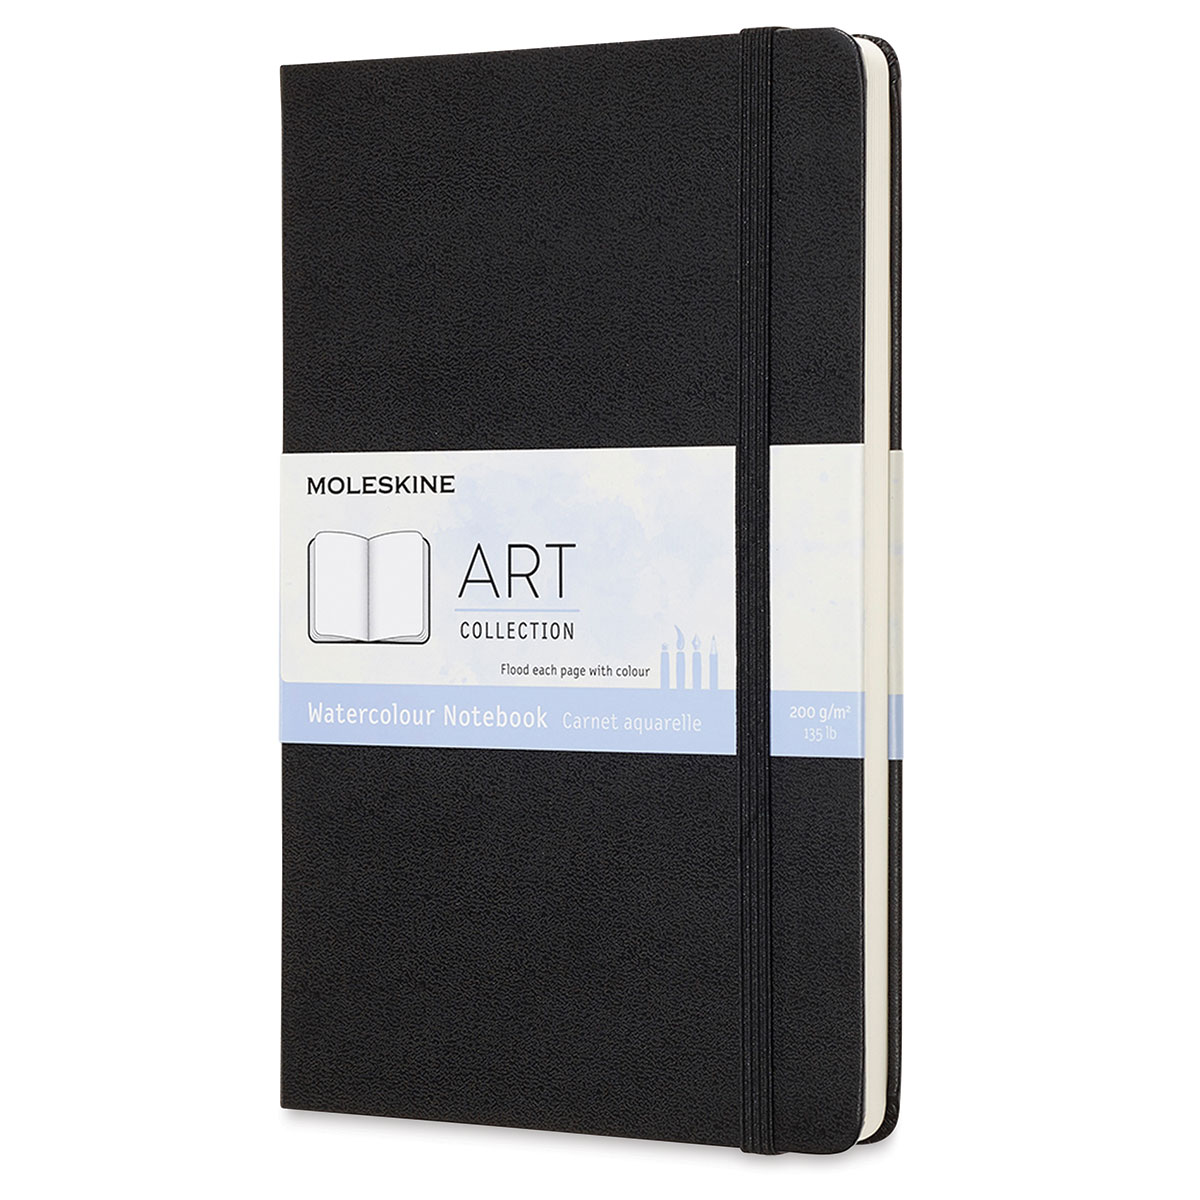 Silver 192 Pages 96 Sheets Lined Ruled Writing Notebook Textured High End Journal Notebook: 5x8